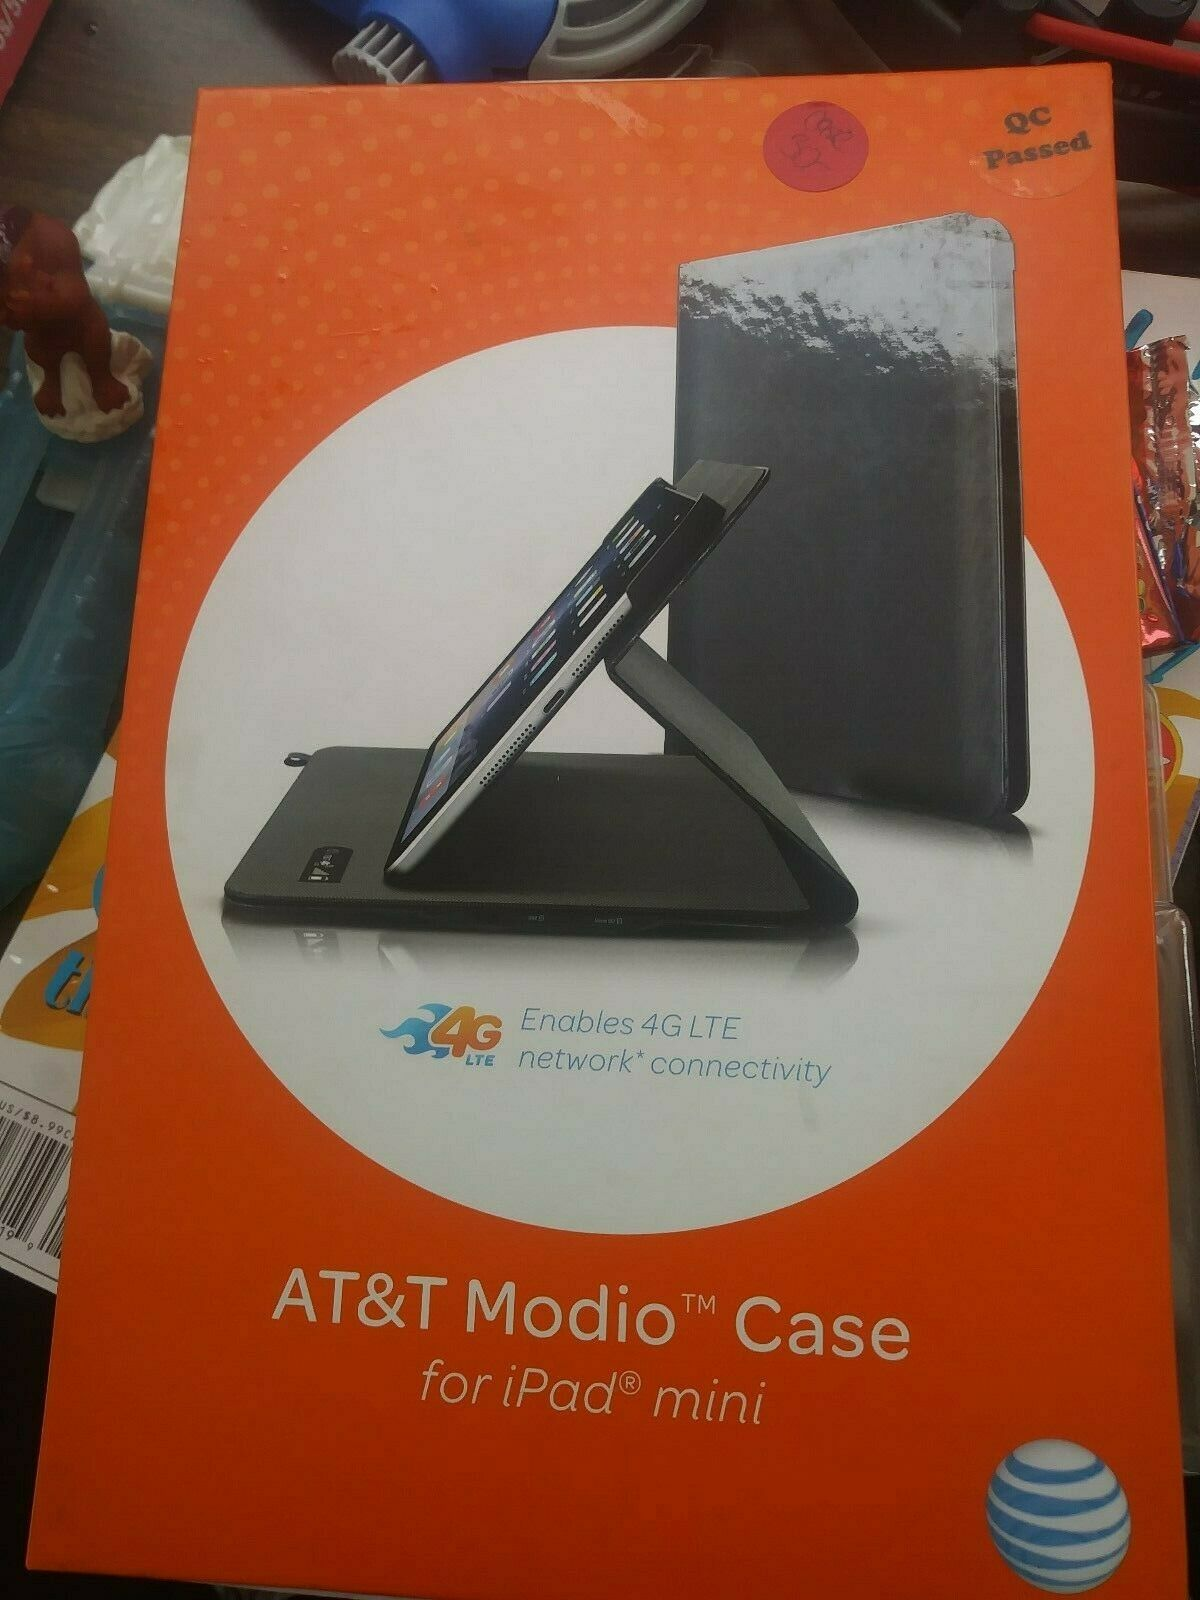 AT&T Modio Case for iPad Mini Tablet 4G Wifi Hotspot